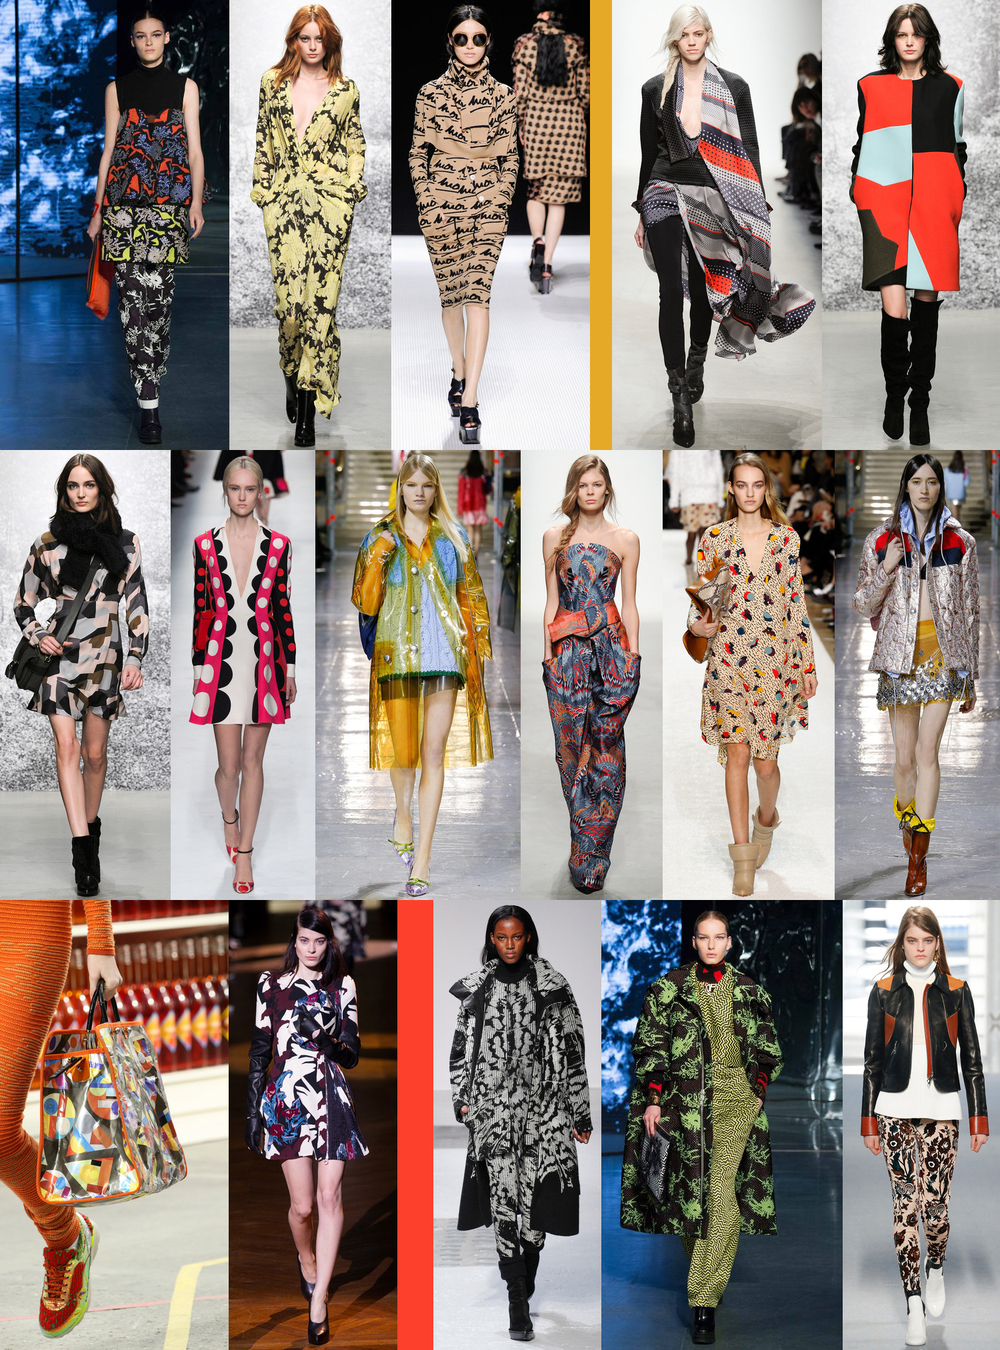 Liz Nehdi's favourite printed looks from Paris Fashion Week. Images: Style.com